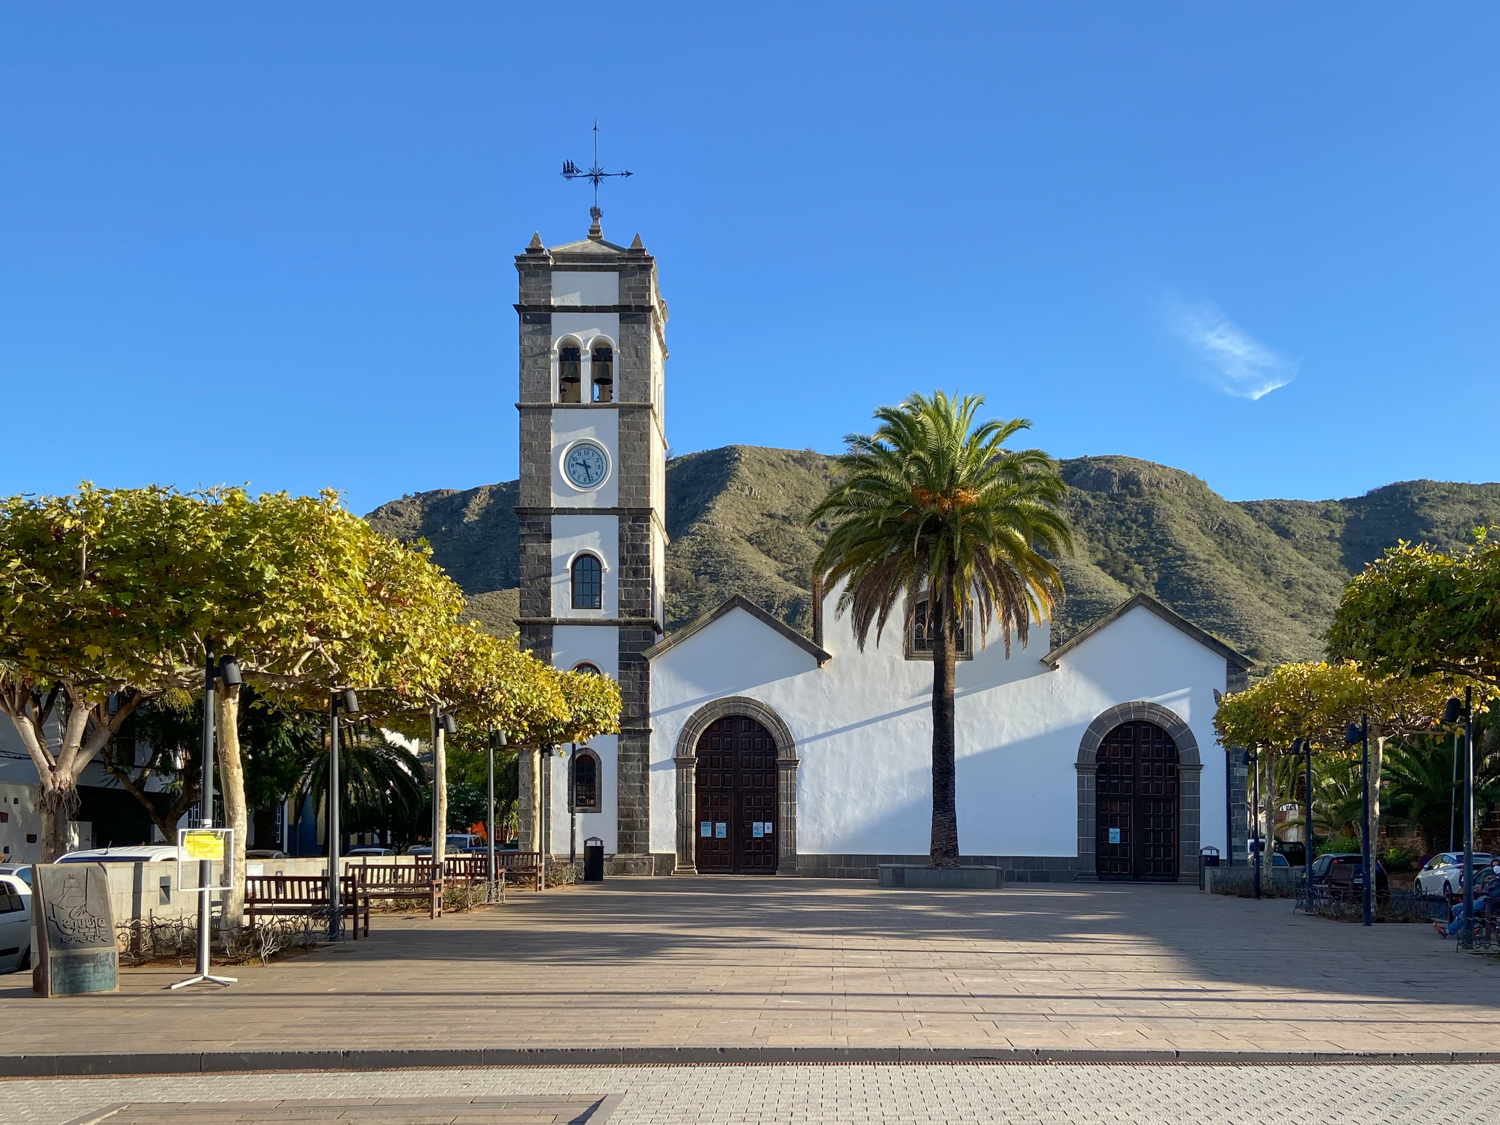 Starting point: Church square (Plaza San Marcos) in Tegueste